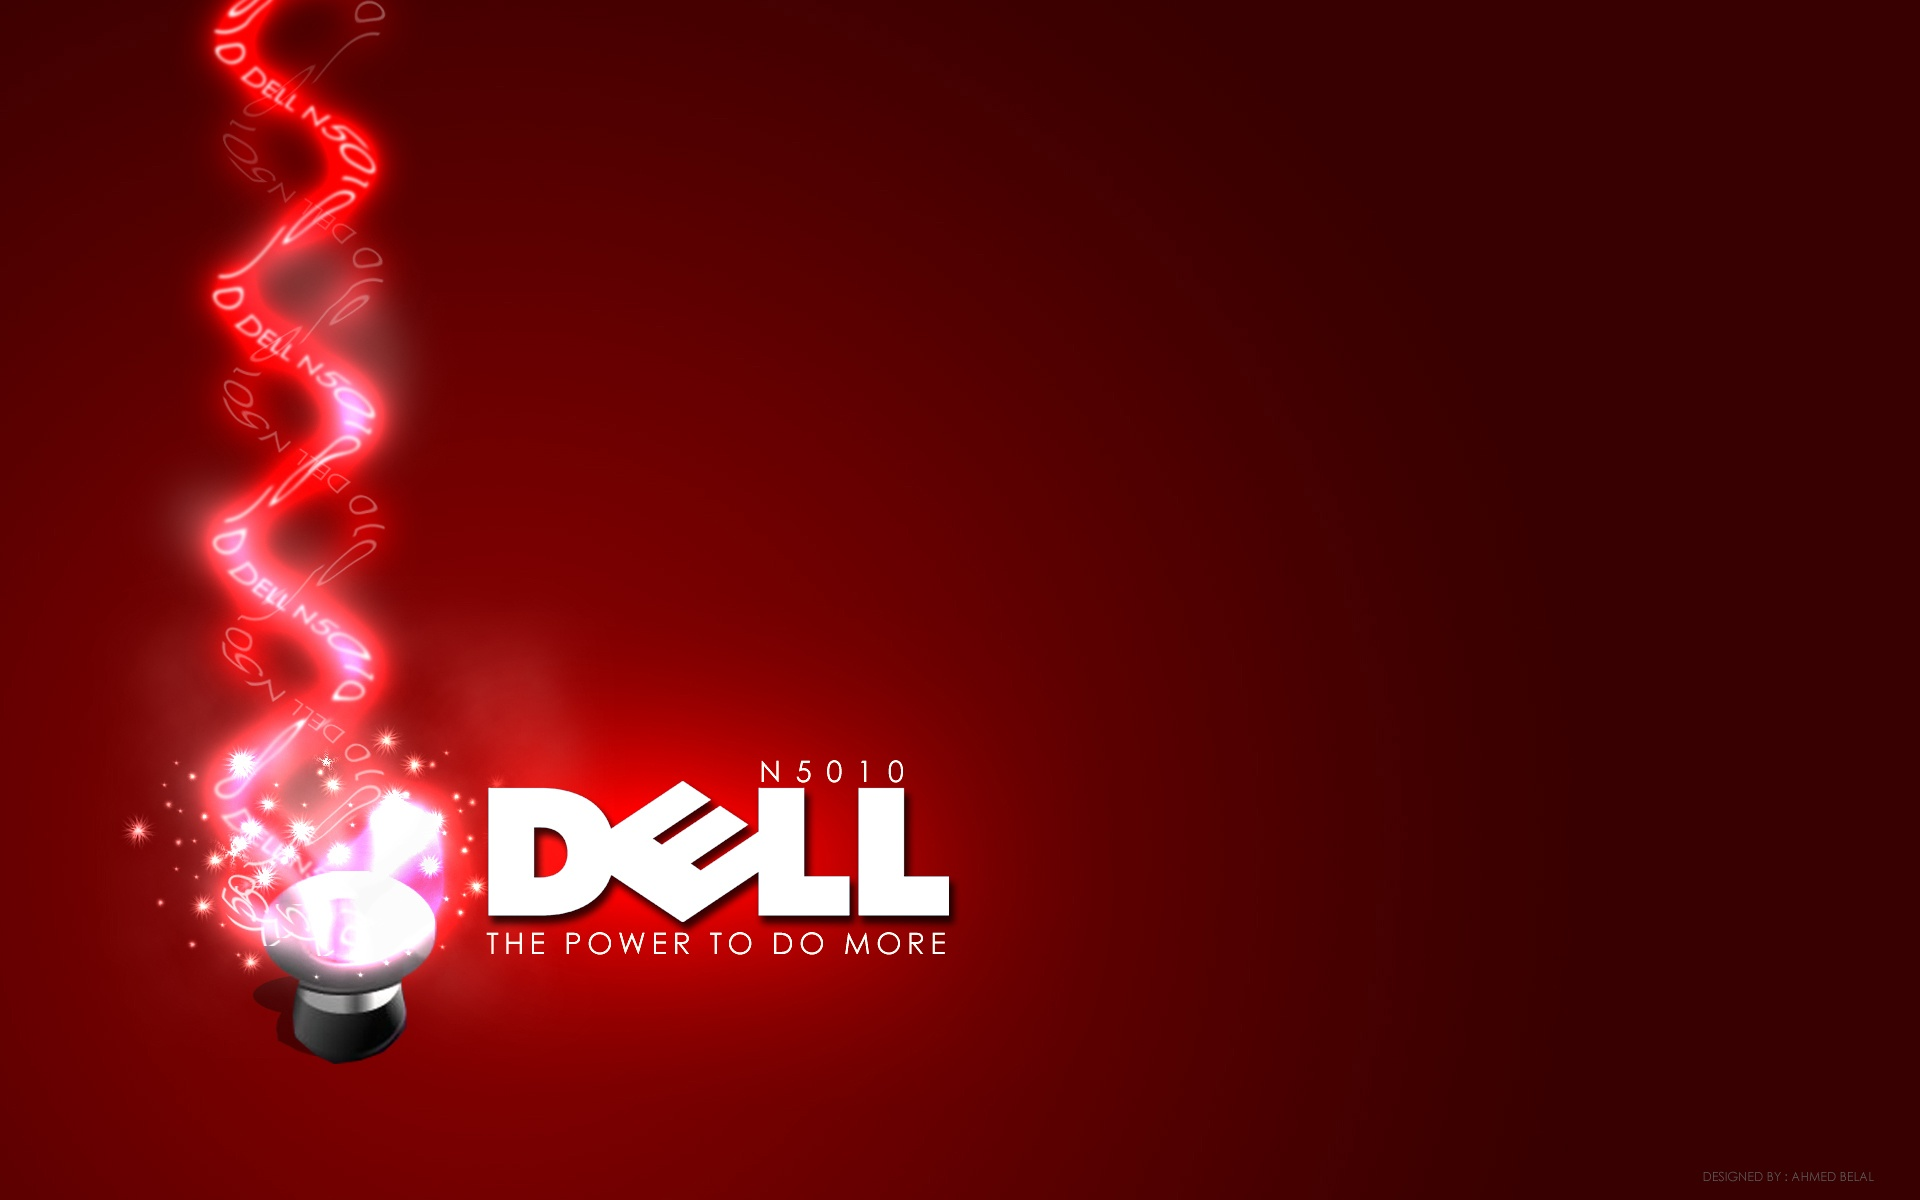 Dell Hd Wallpapers 1080p Wallpapersafari